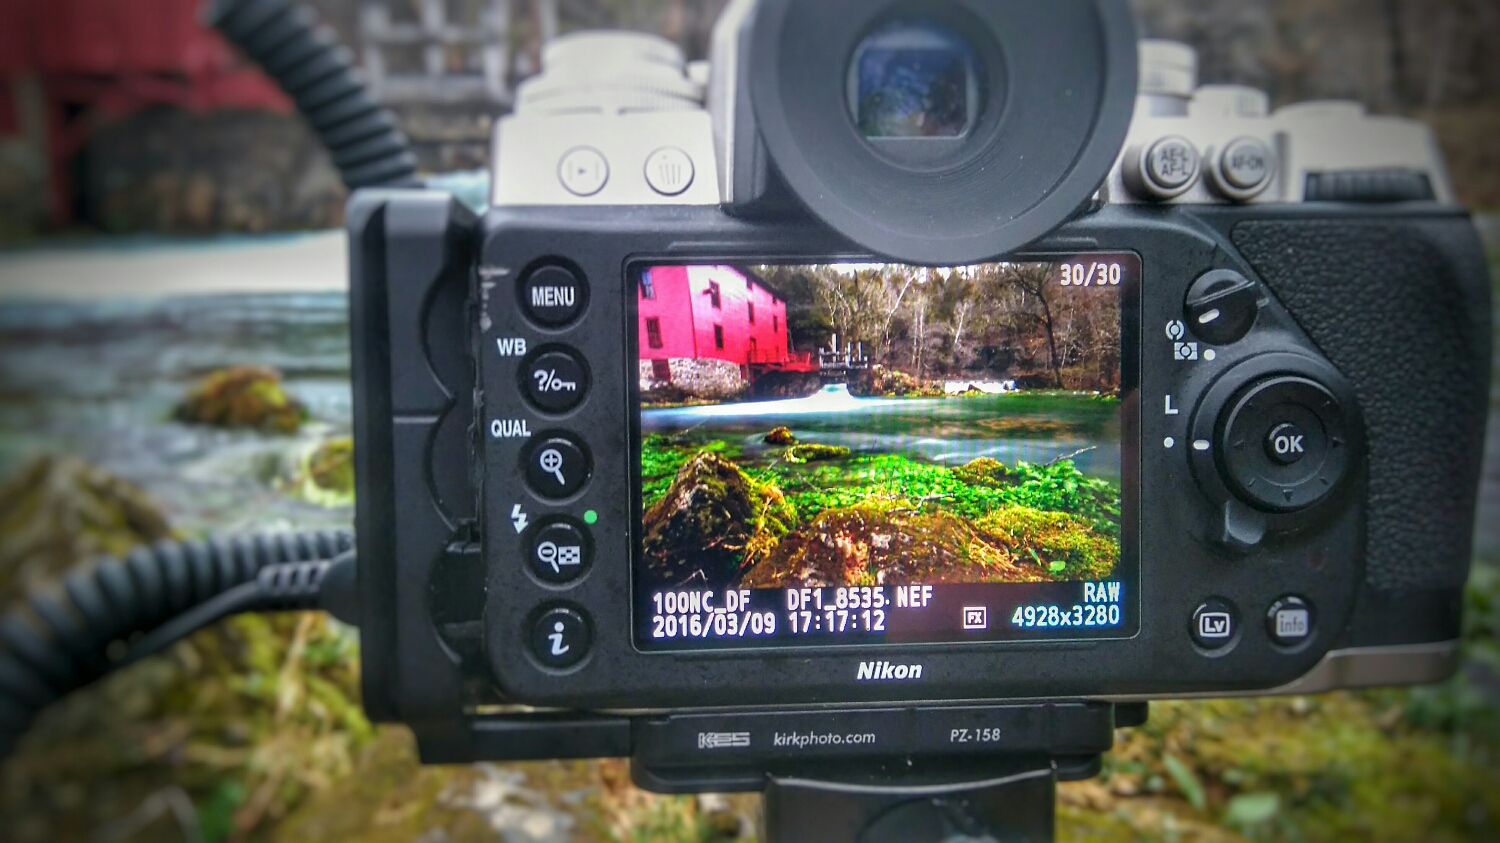 Getting the money shot at Alley Spring in the Ozark National Scenic Waterway Park.